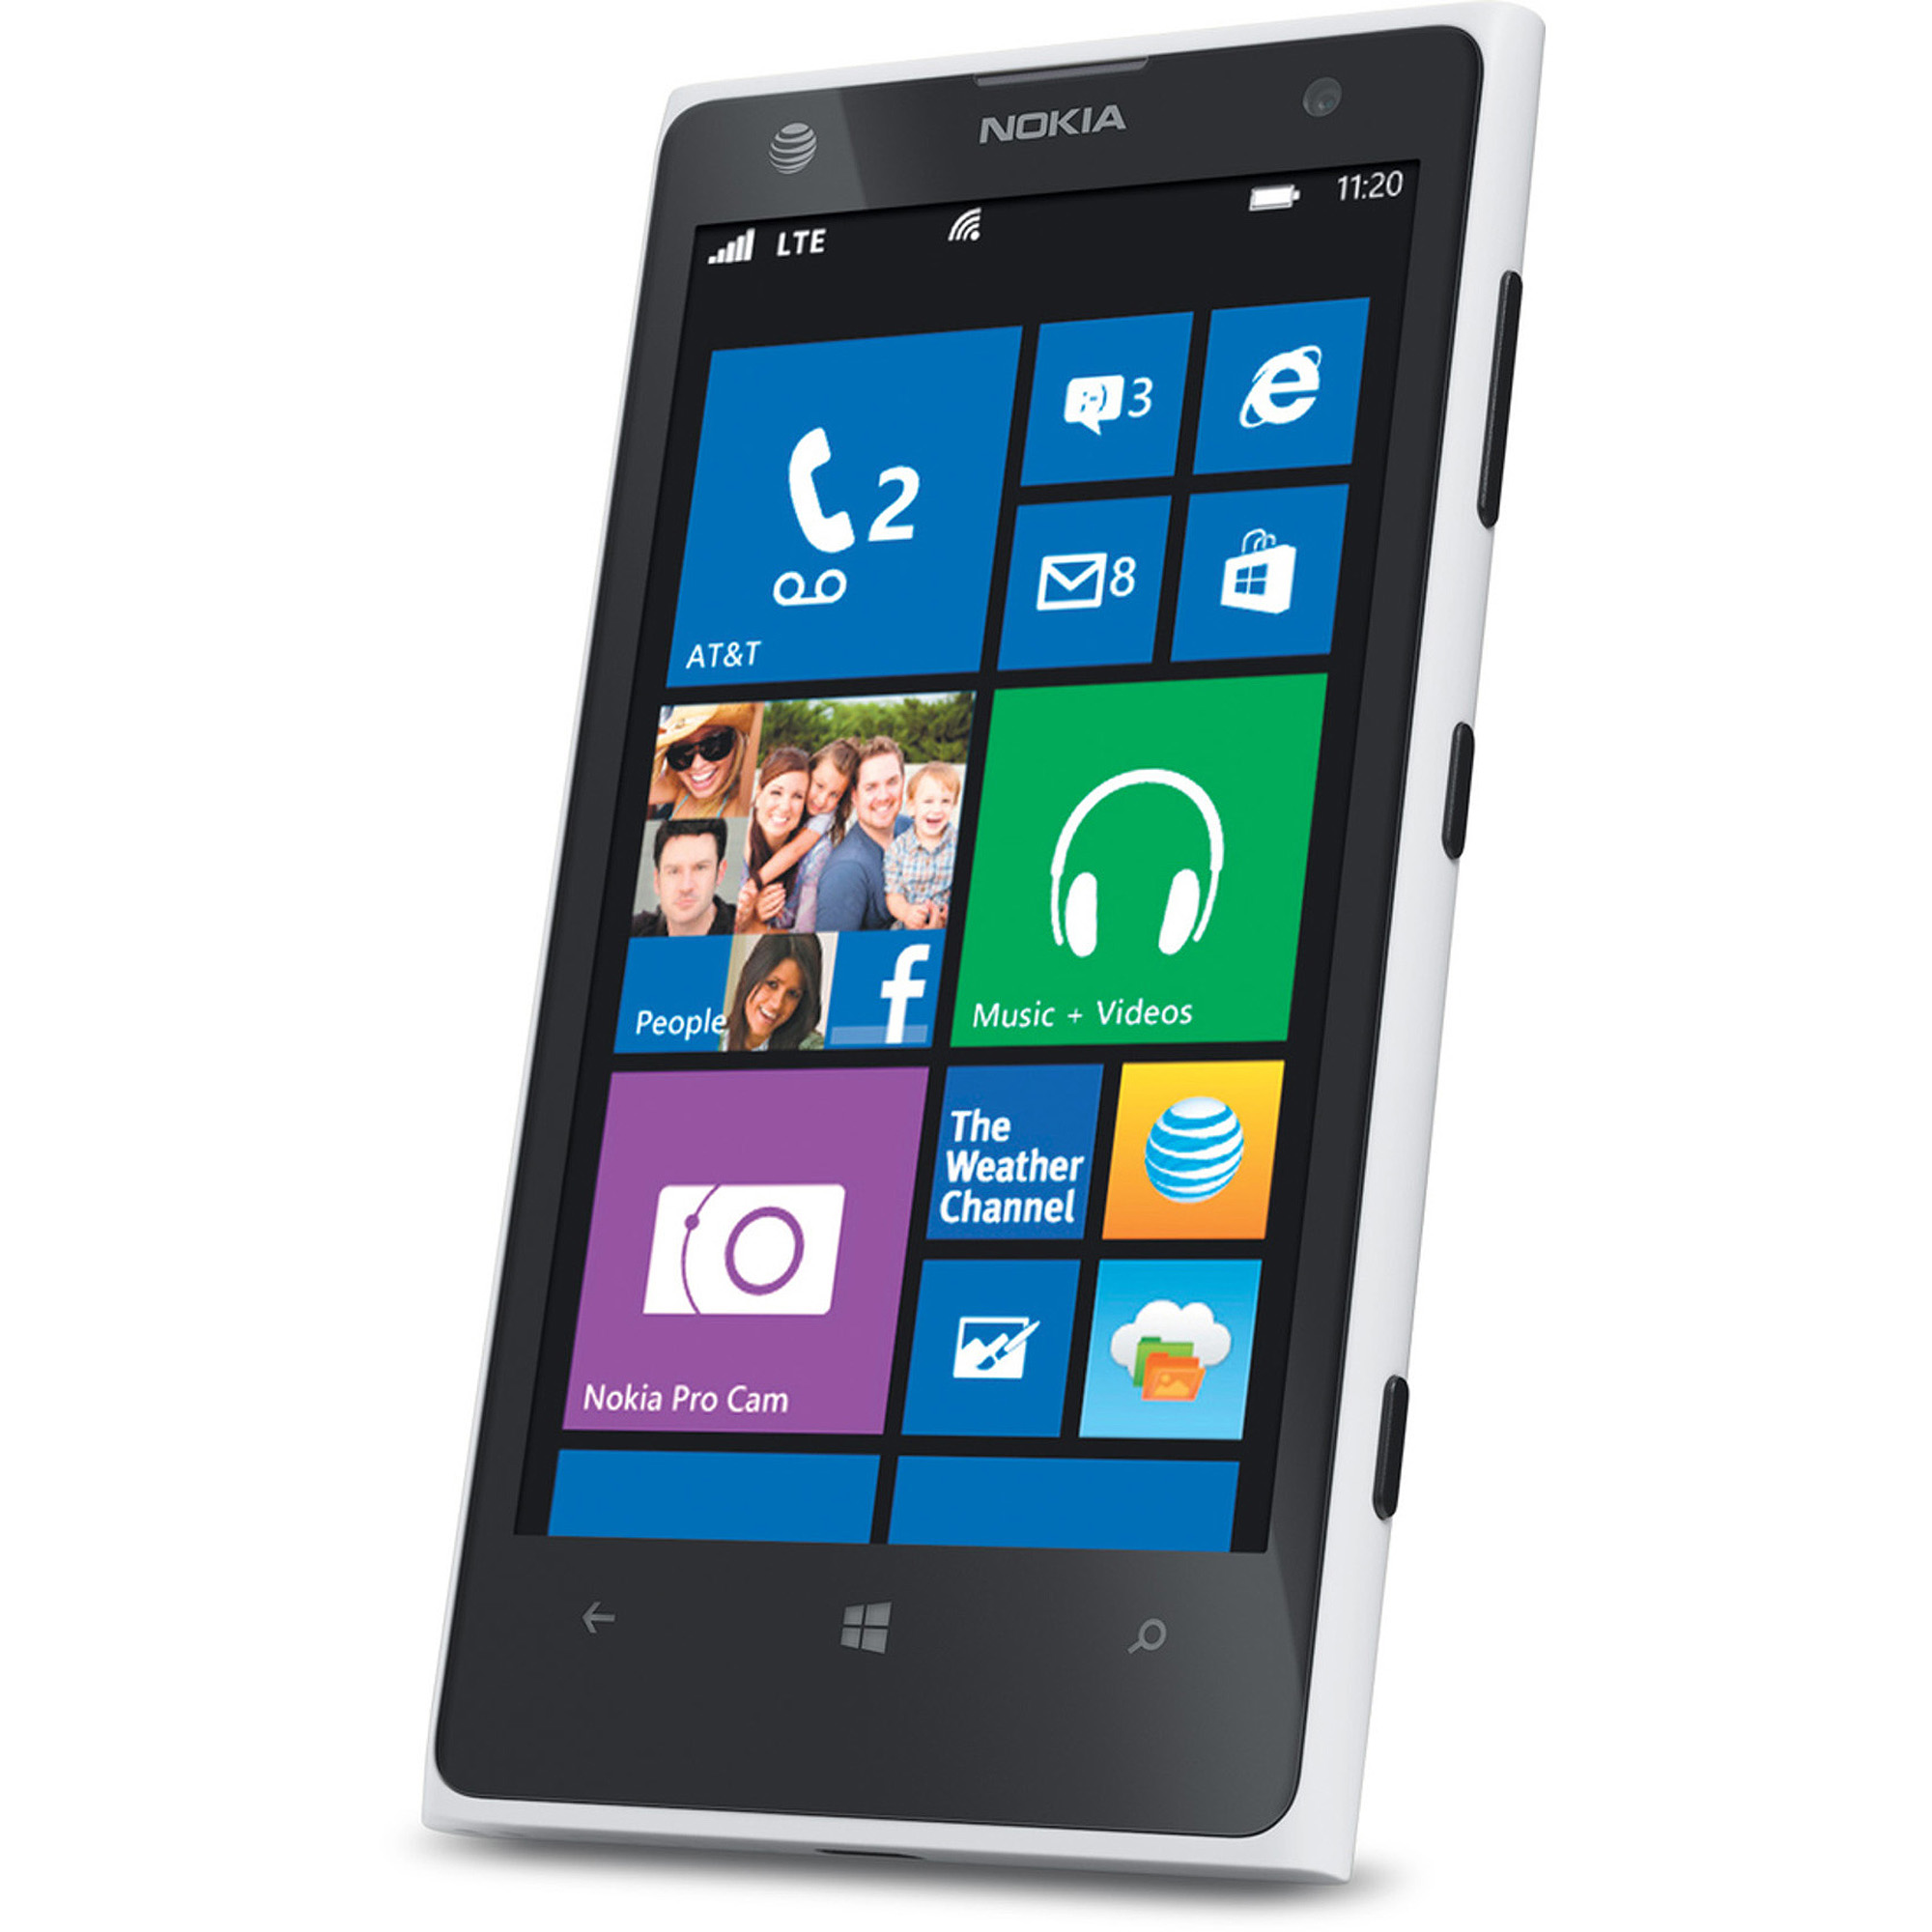 Nokia Lumia 1020 AT&T Windows 8 Smartphone, White/Black